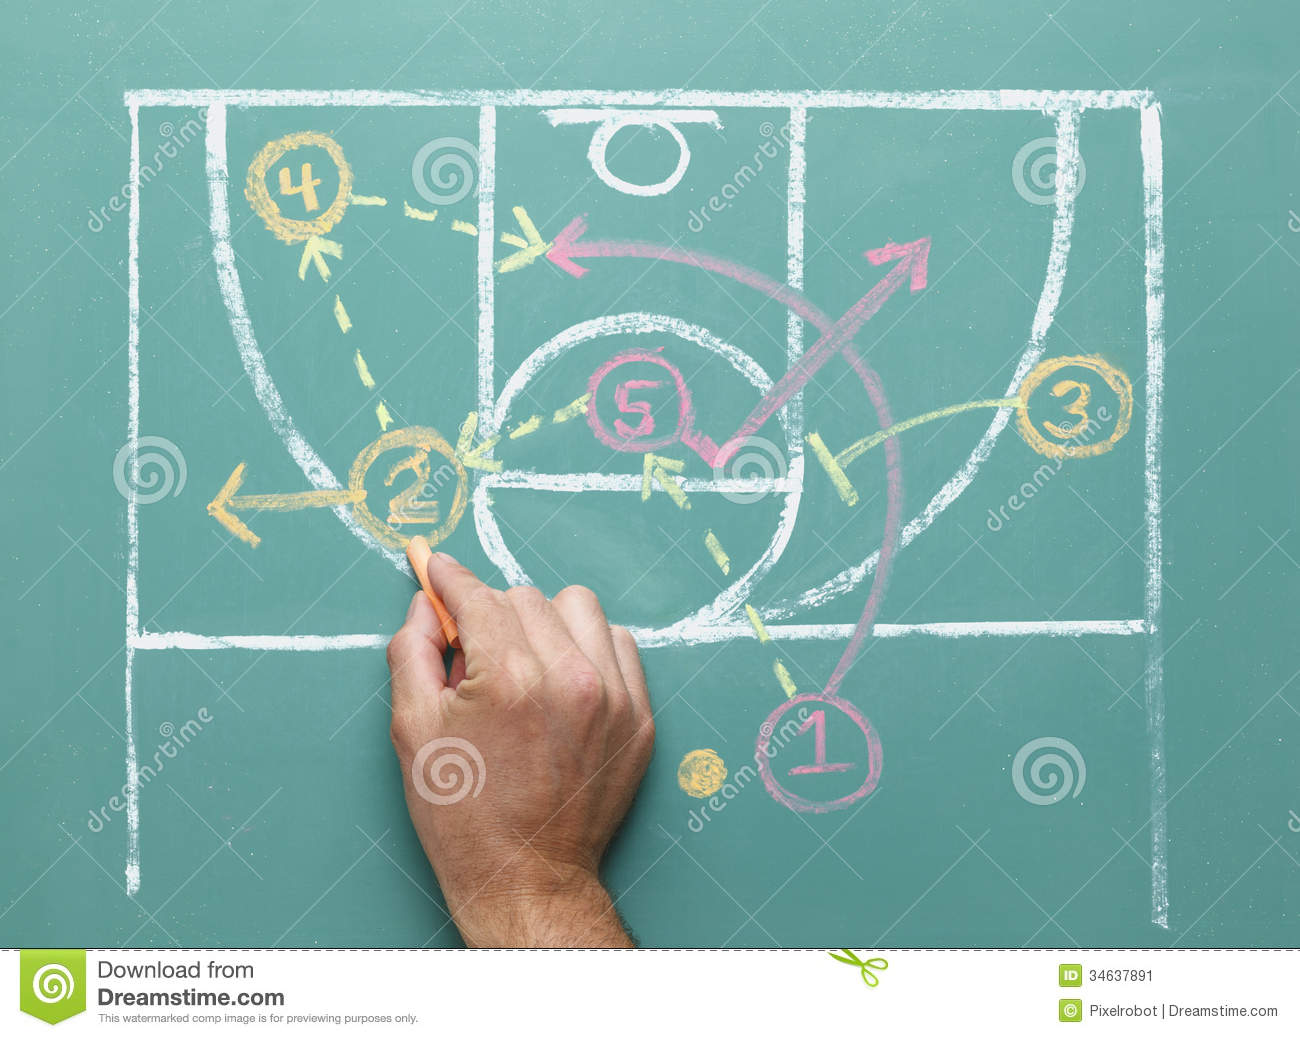 Basketball Strategy Stock Image - Image: 34637891